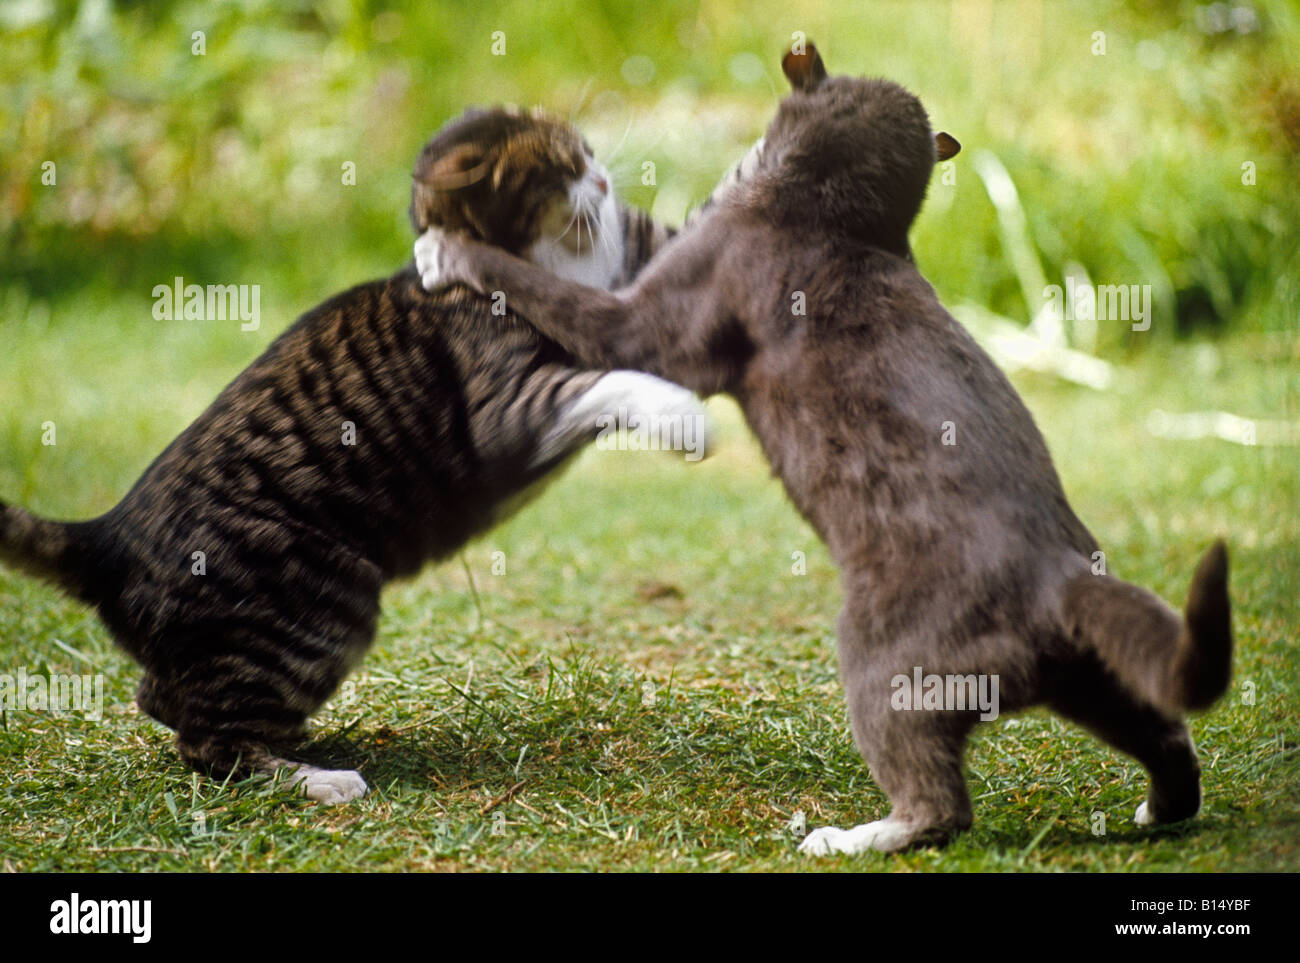 Free Clipart Cats Fighting